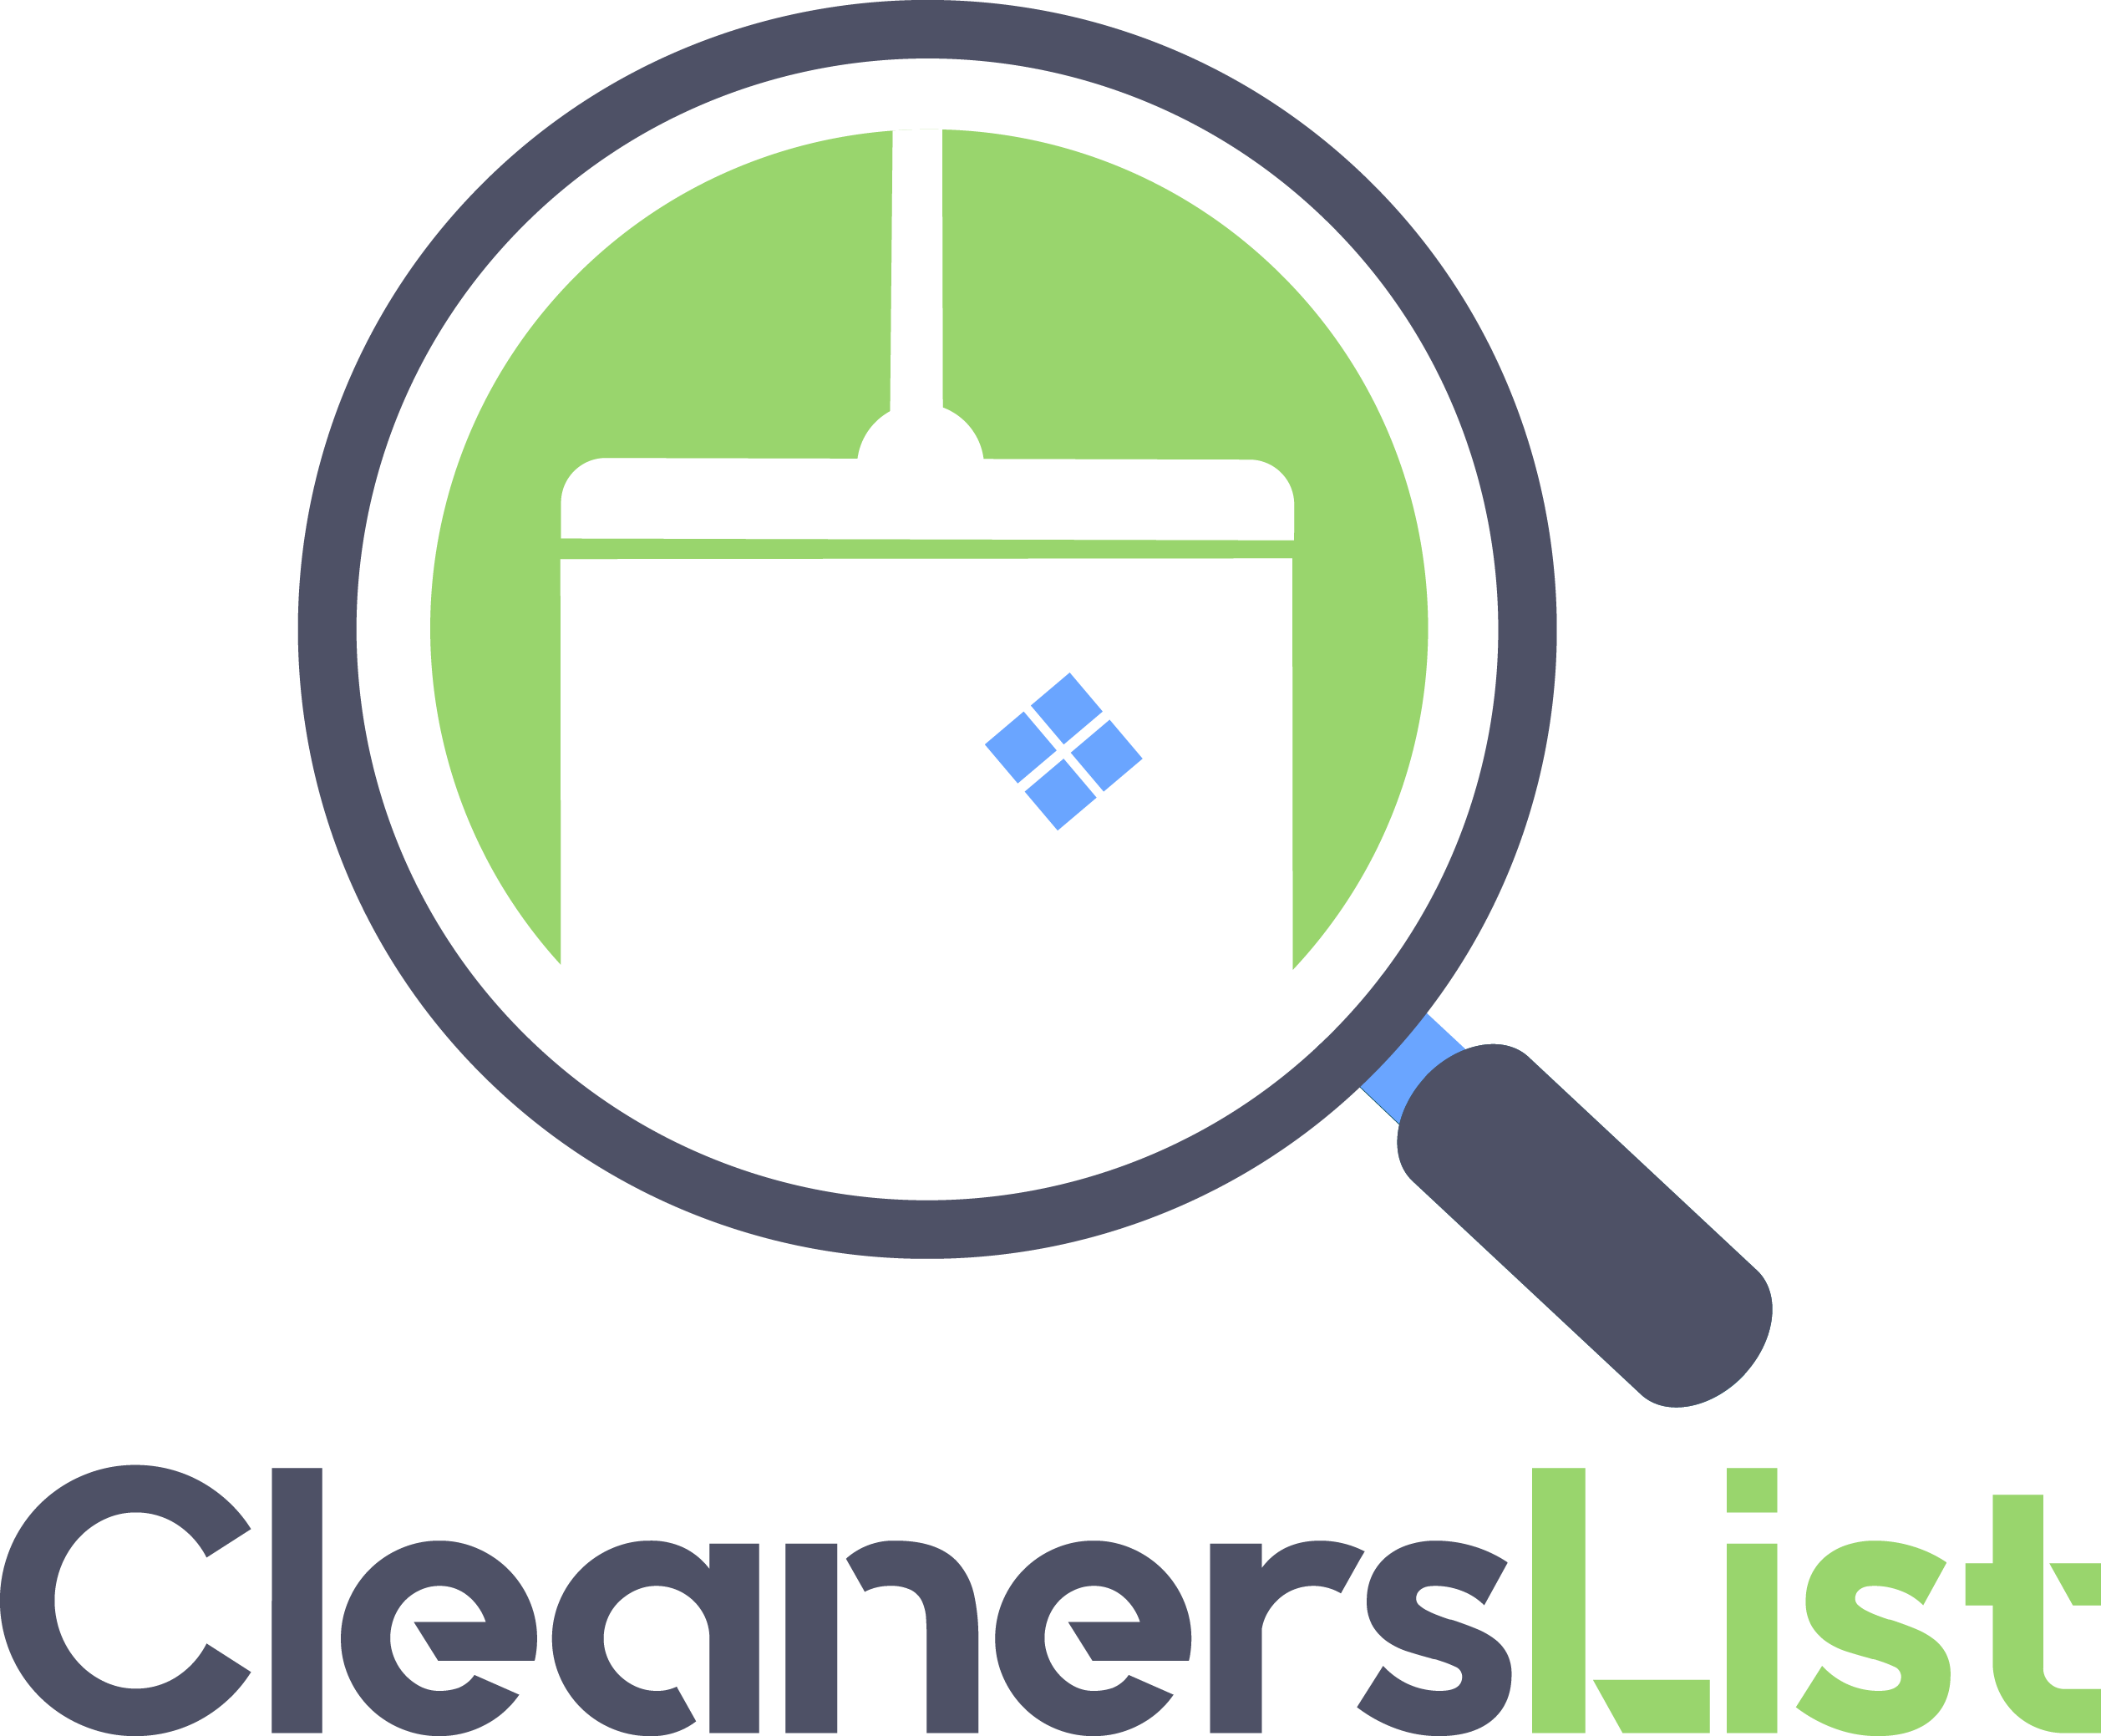 CLEANERLIST